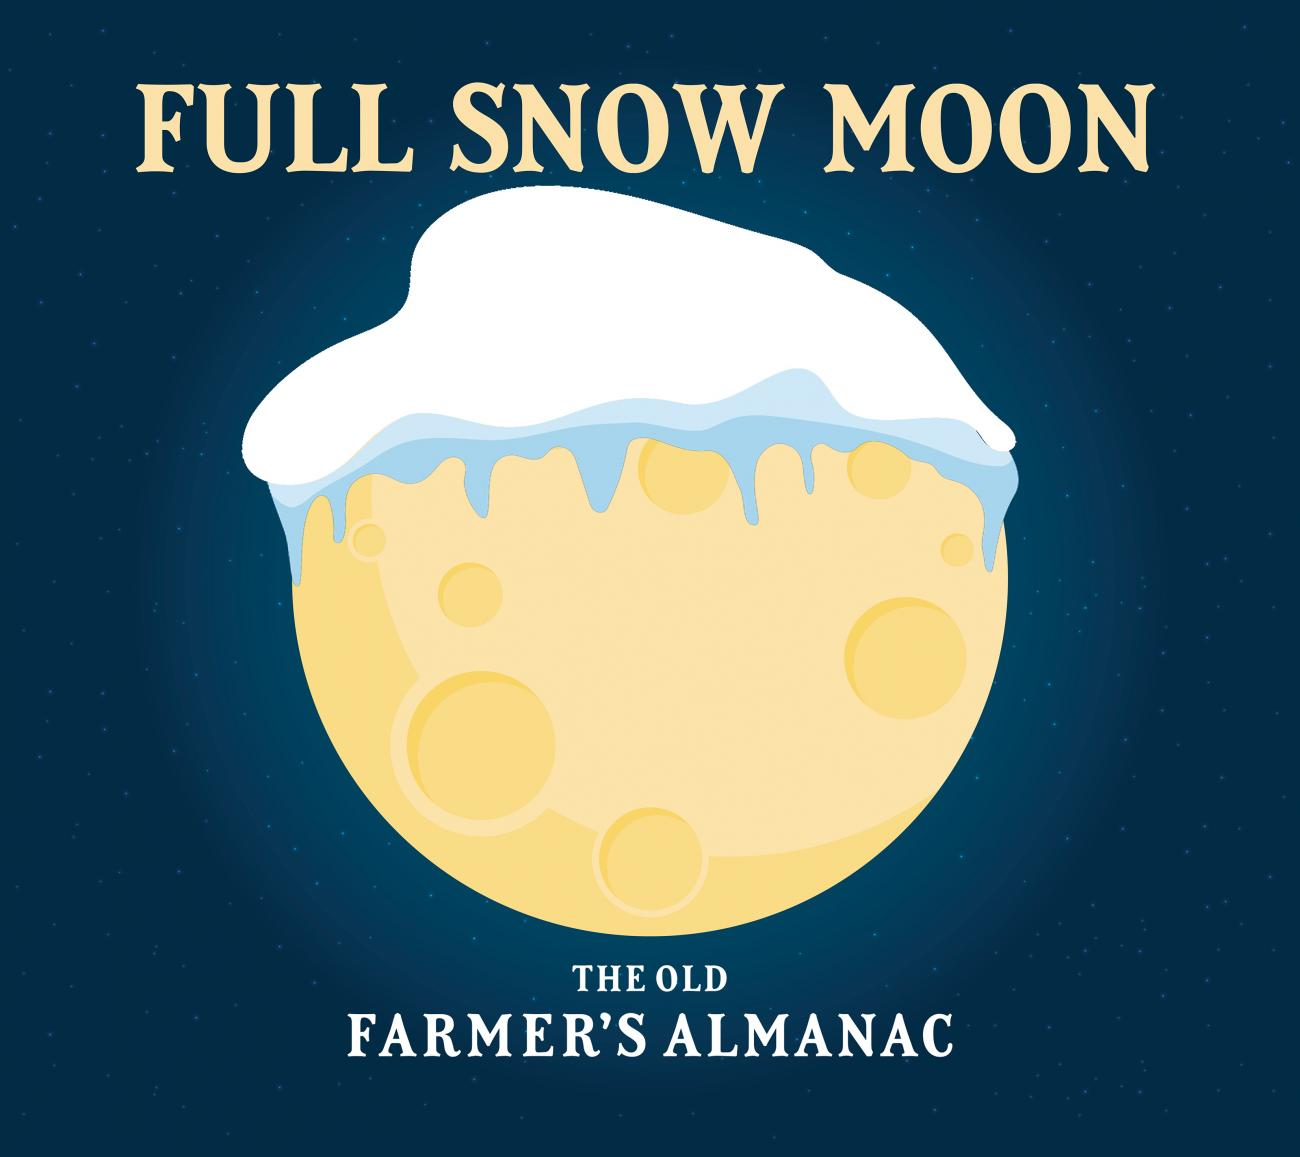 Lunar Calendar February 17 2020 Full Moon for February 2019: The Full Snow Moon & Supermoon | The